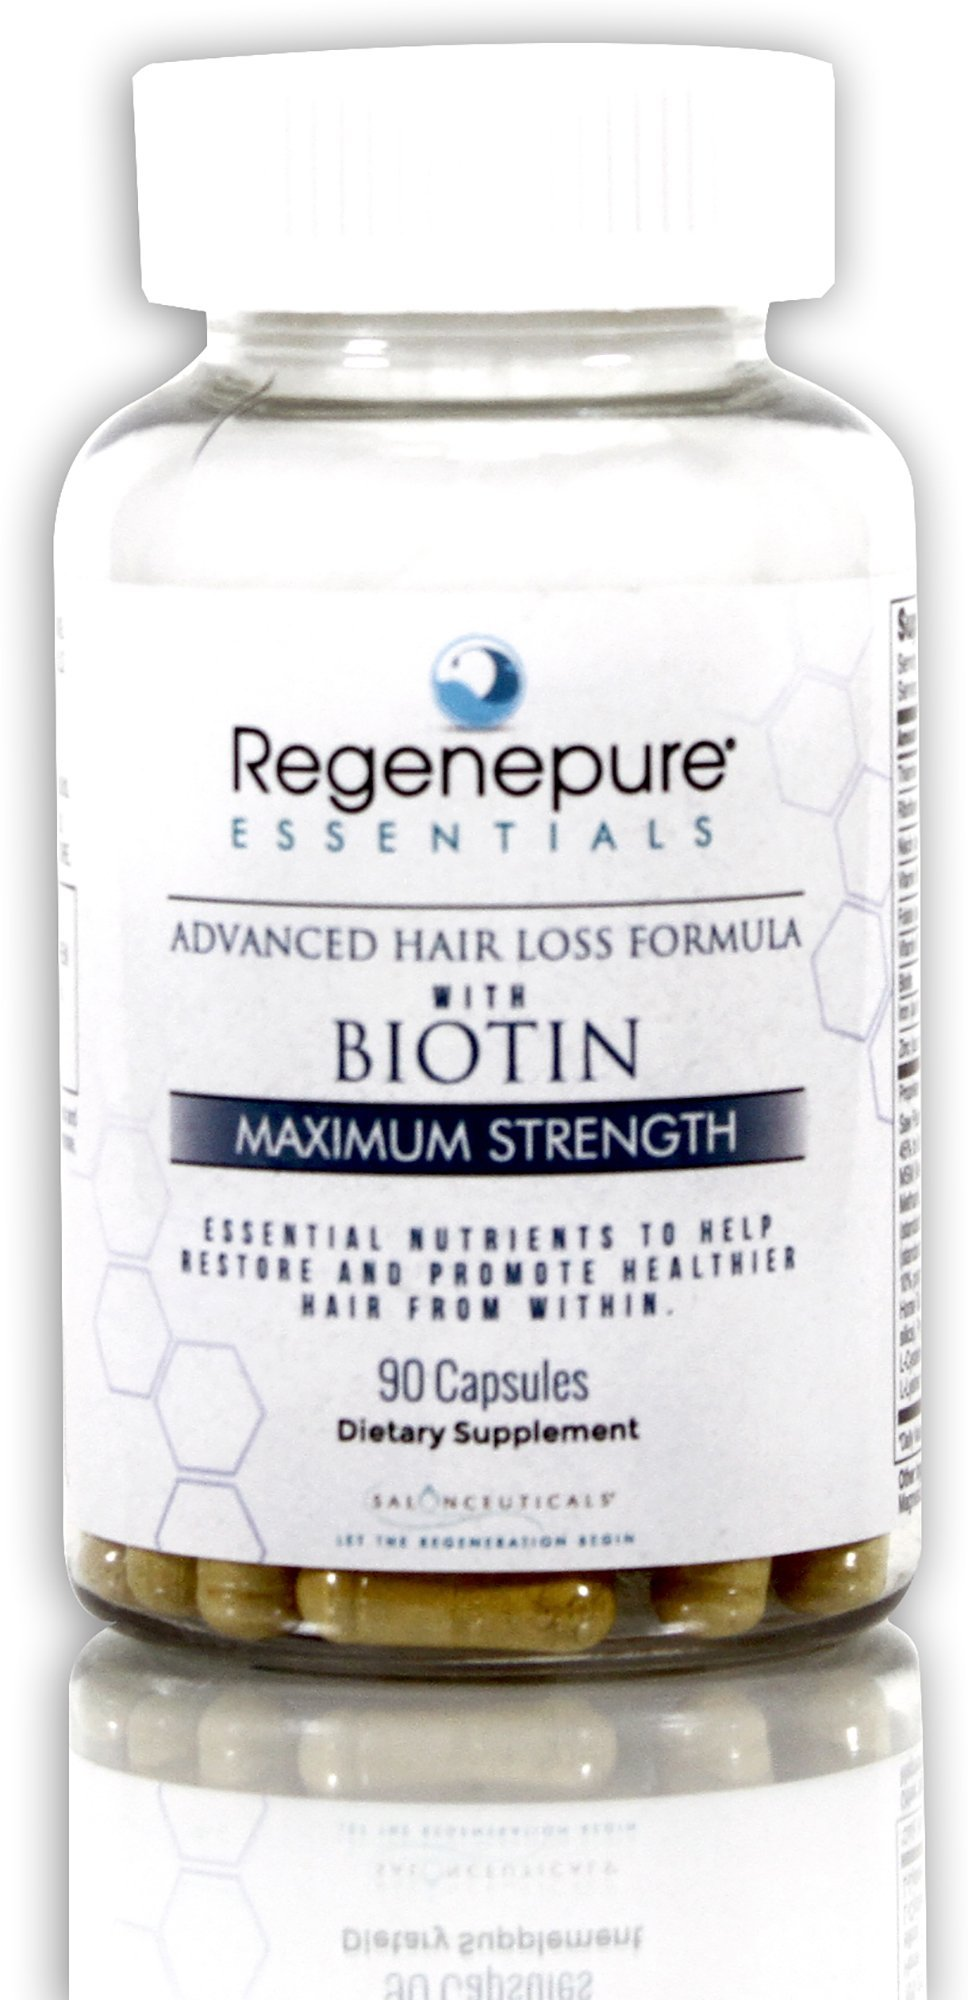 Regenepure - Advanced Maximum Strength Hair Loss Supplement, with Biotin to Support Hair Growth, 90 Capsules